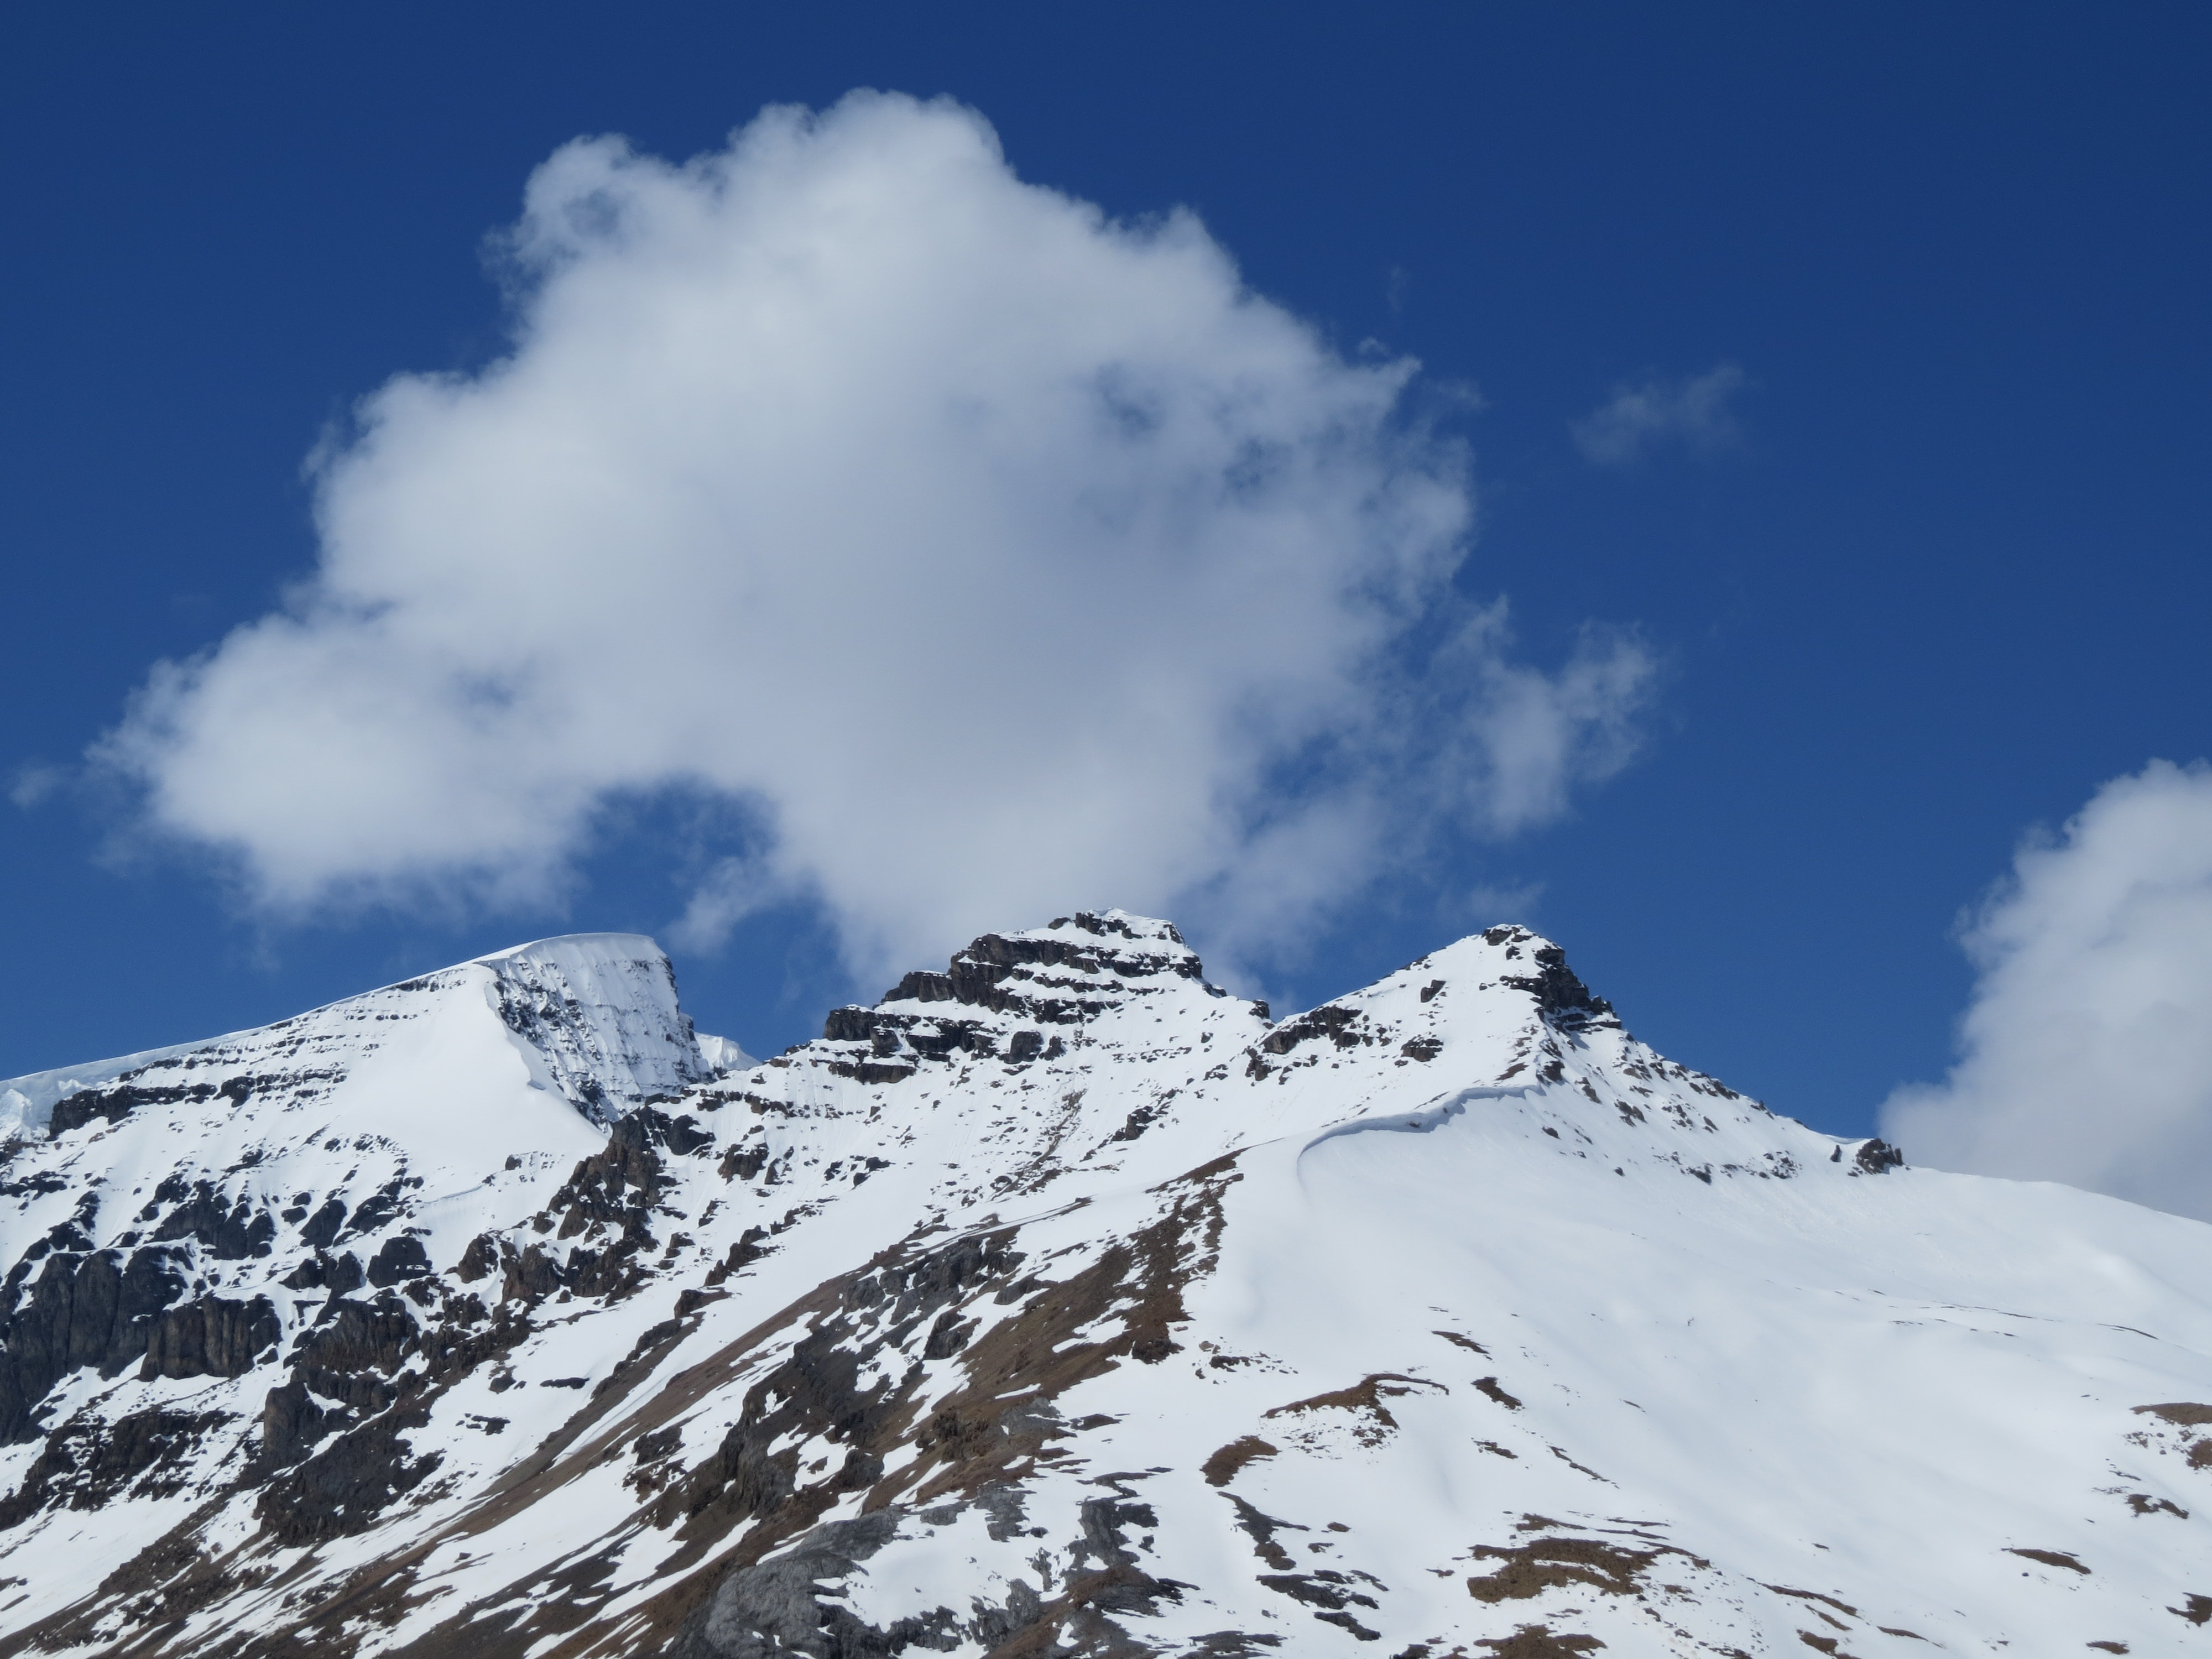 Clouds over a snowy mountain peaks at Banff National Park